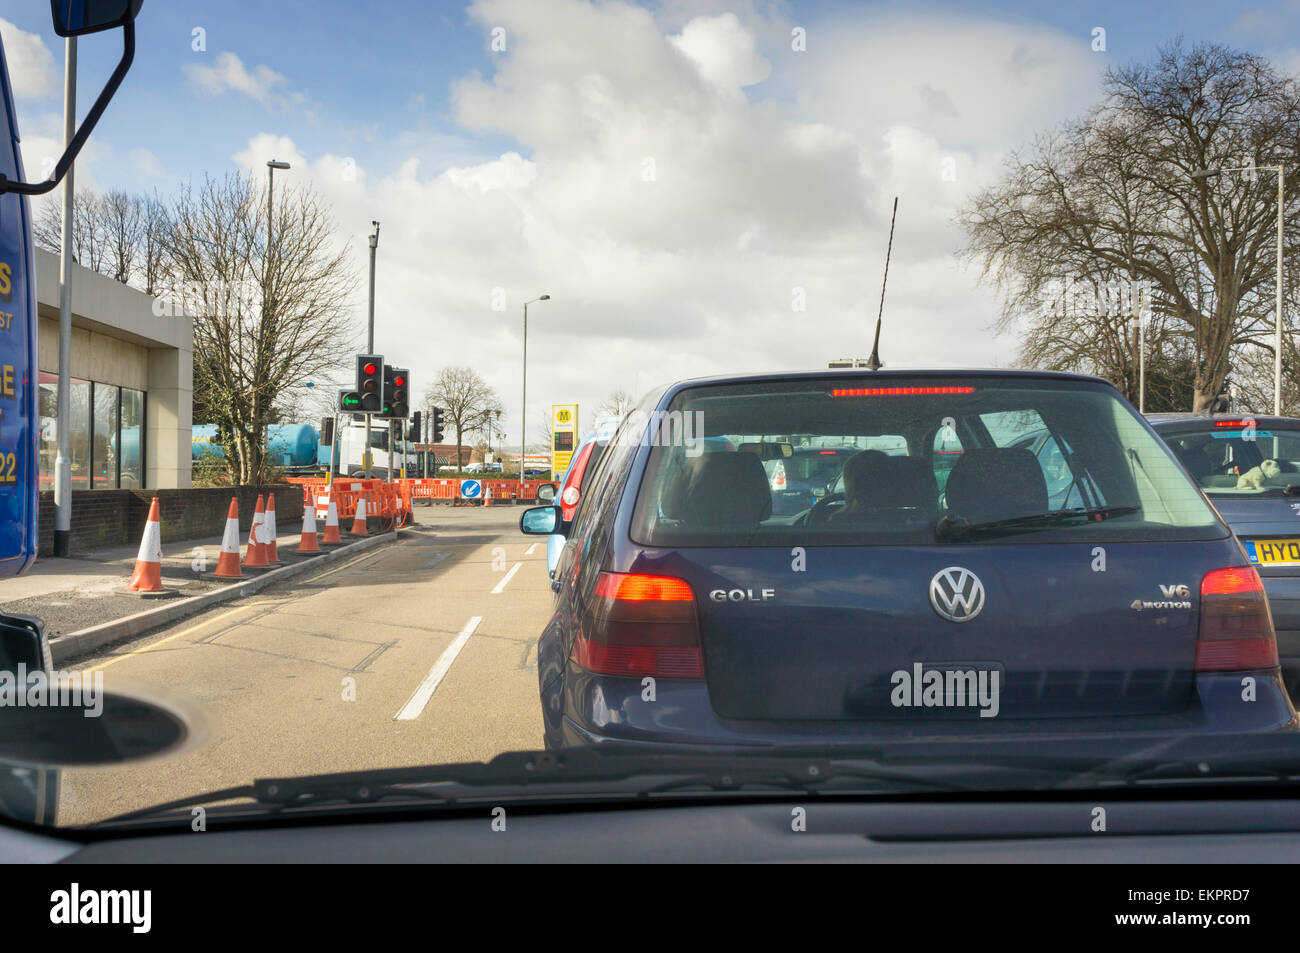 Traffic jam of cars queuing at traffic lights with road works, England, UK - Stock Image